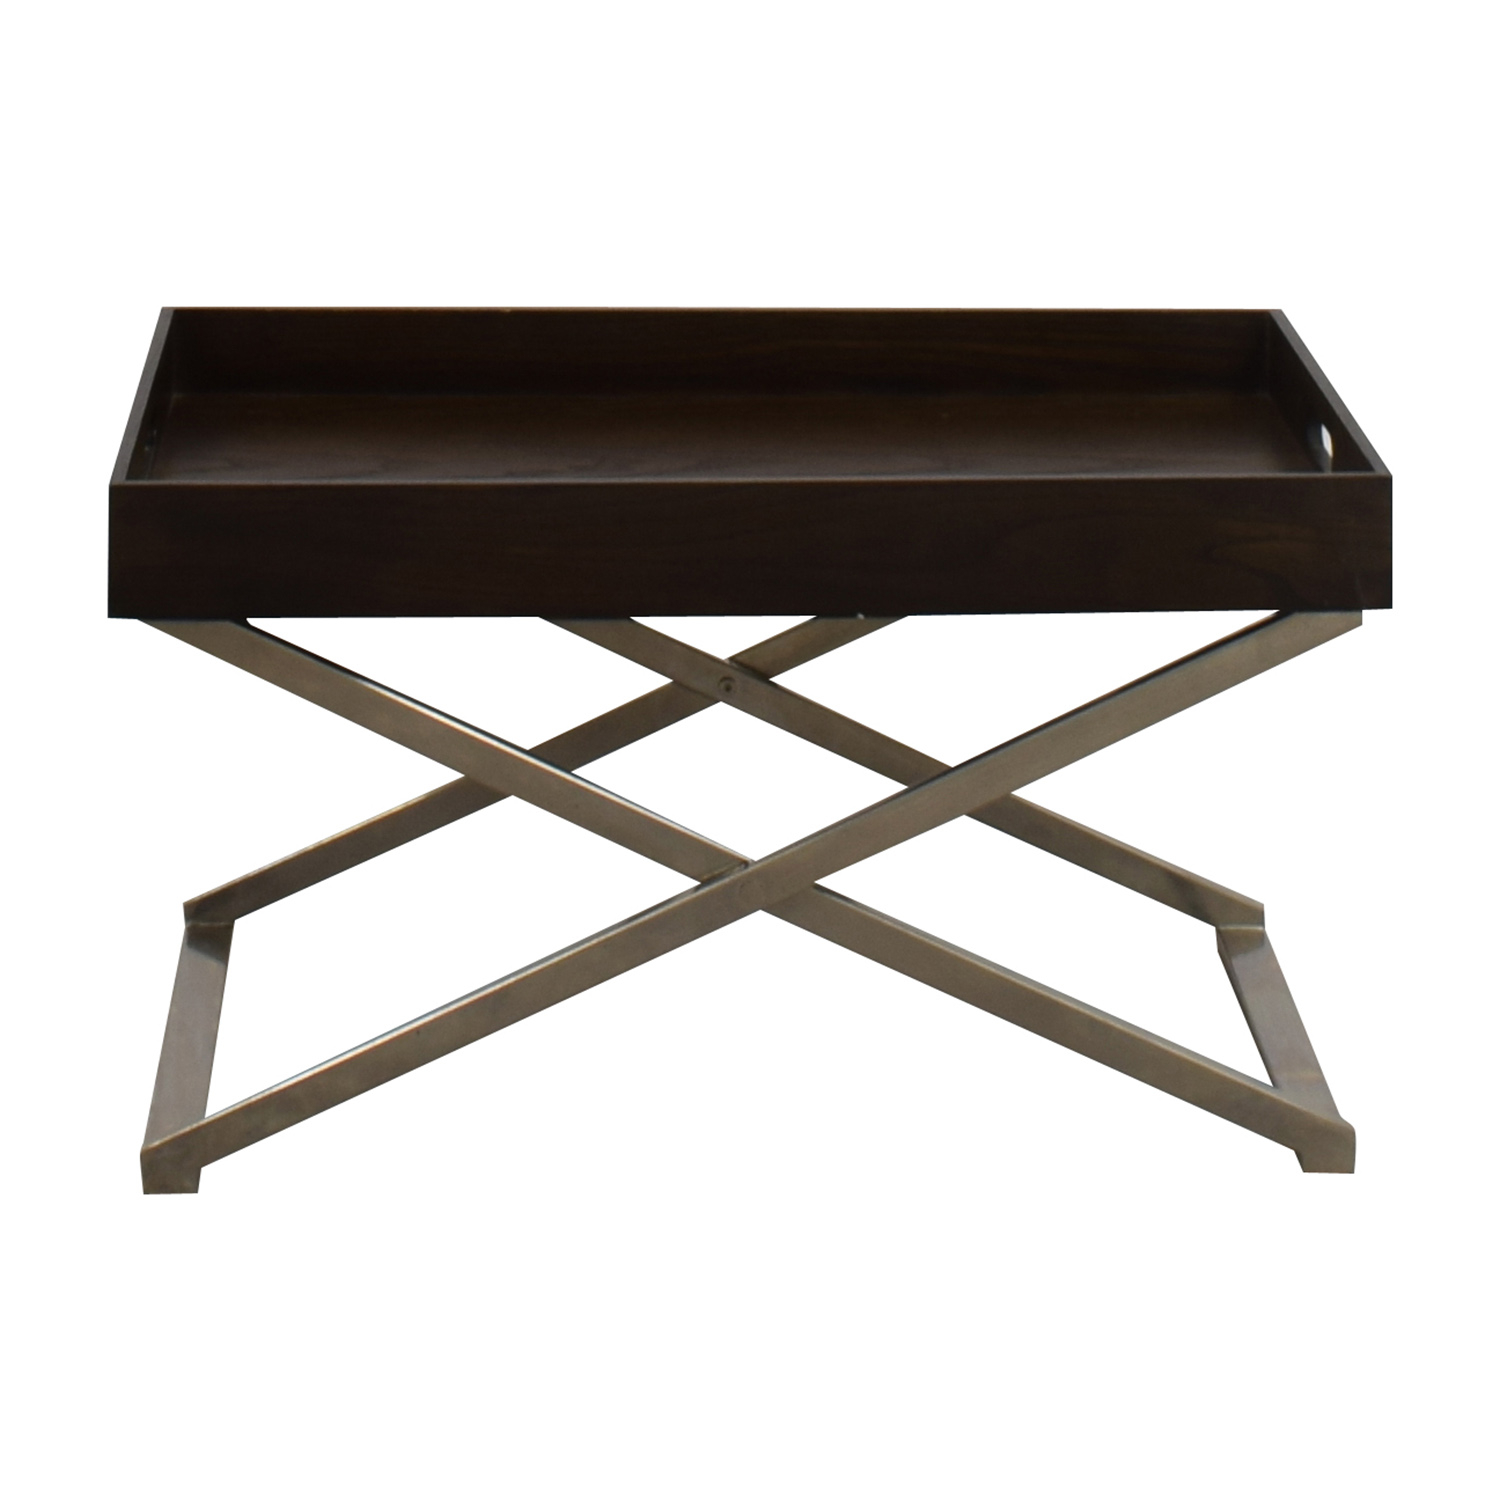 85 Off West Elm West Elm Collapsible Coffee Table Tables intended for measurements 1500 X 1500